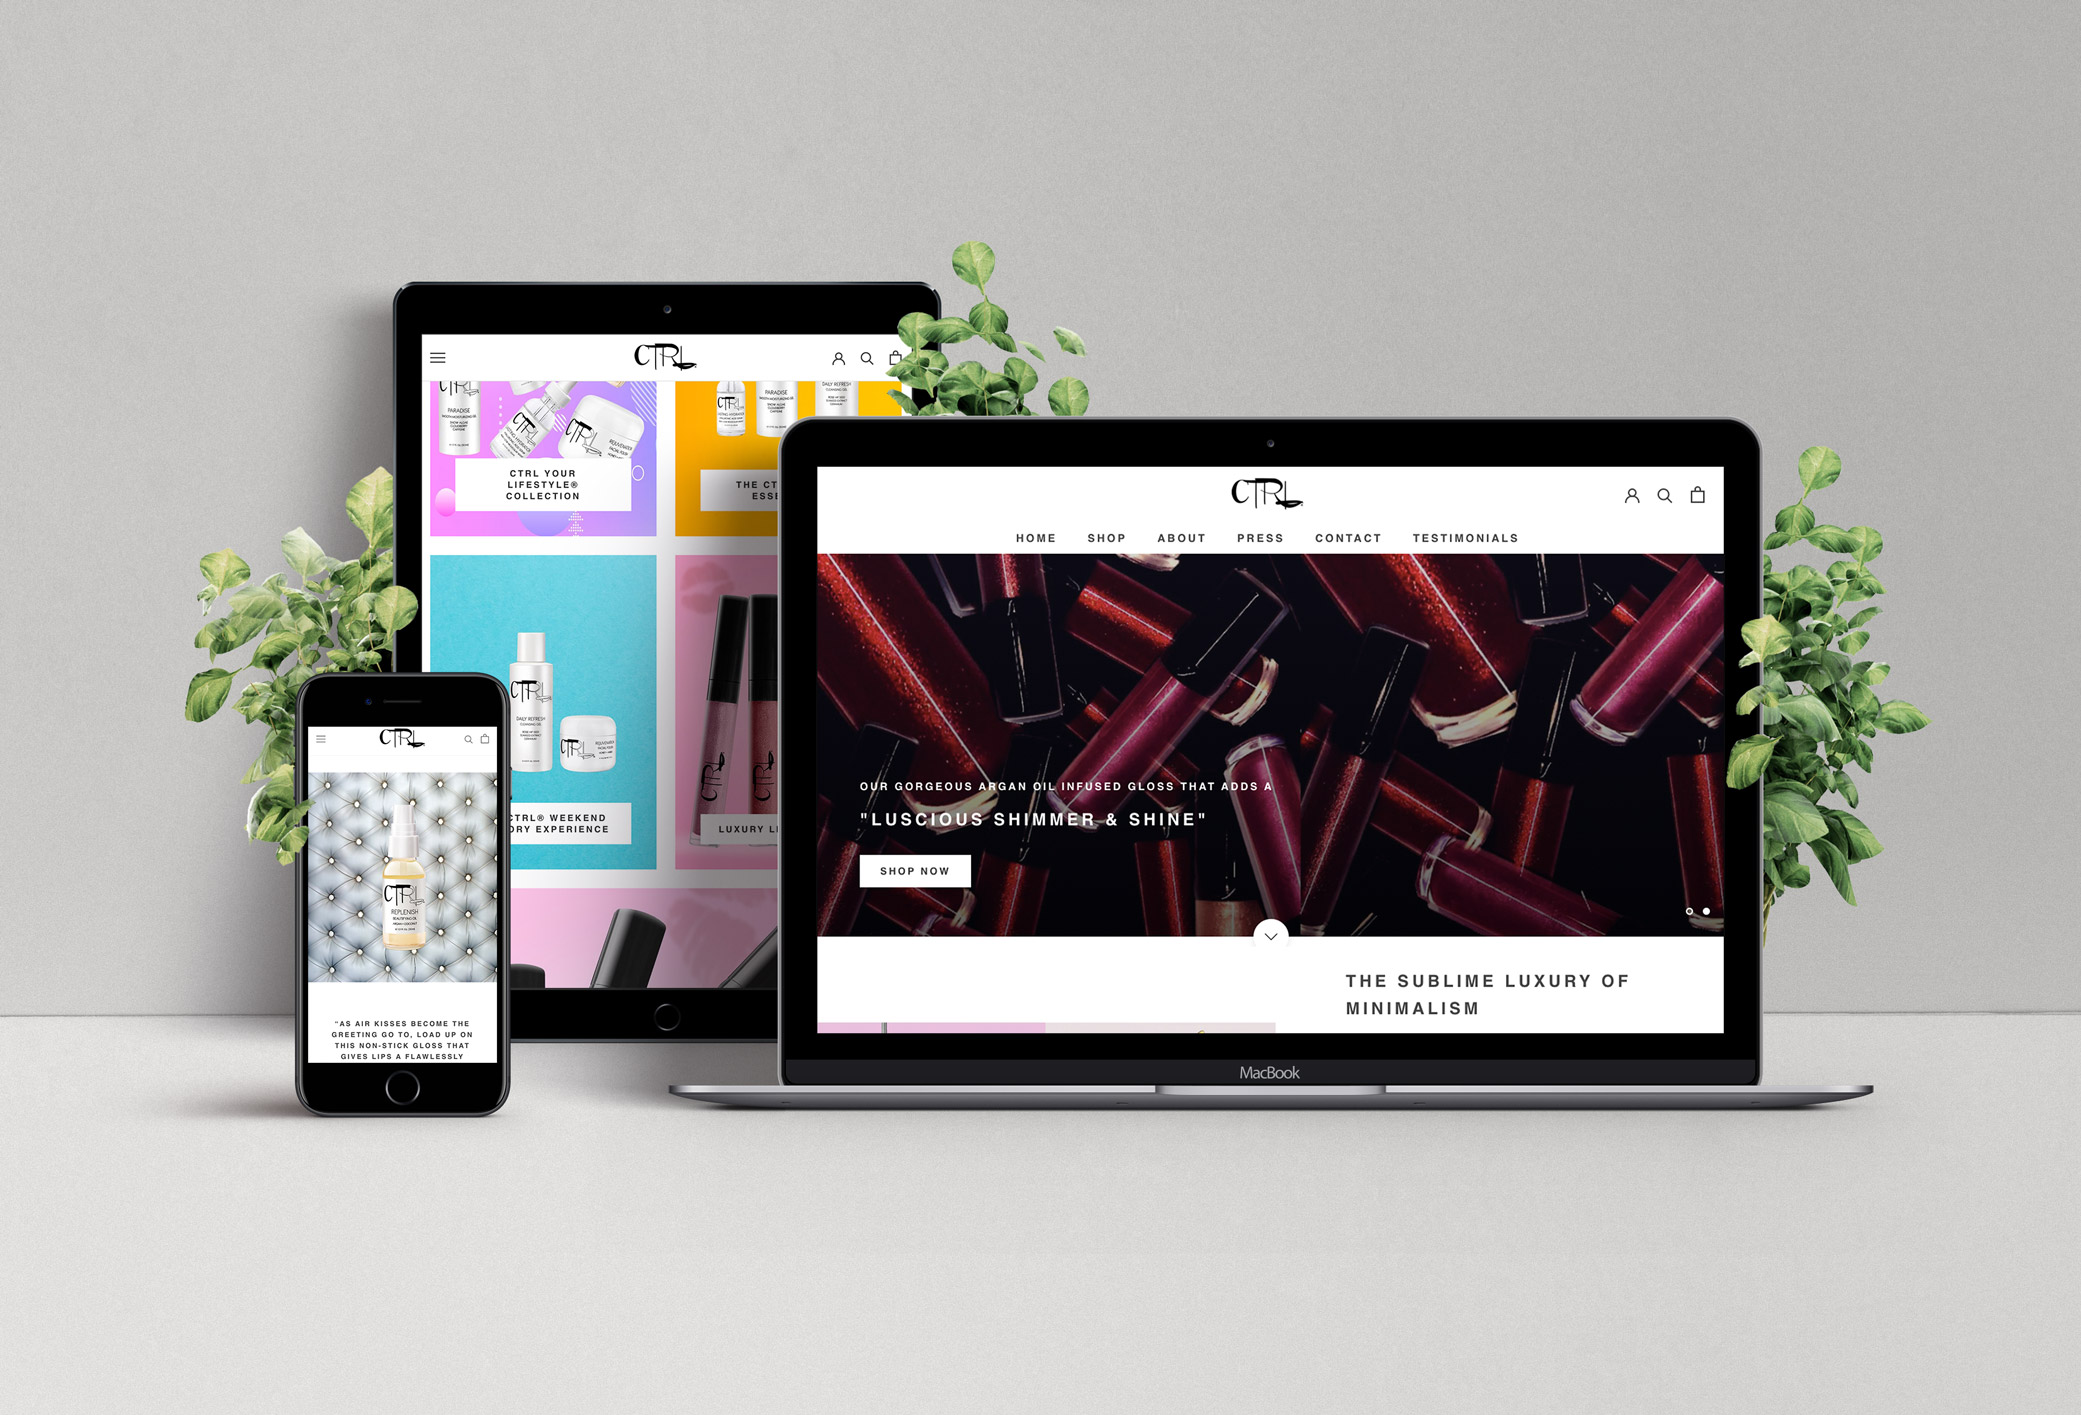 CTRL Cosmetics website before the redesign featuring different views of their site homepage on an iPad, iMac and iPhone.